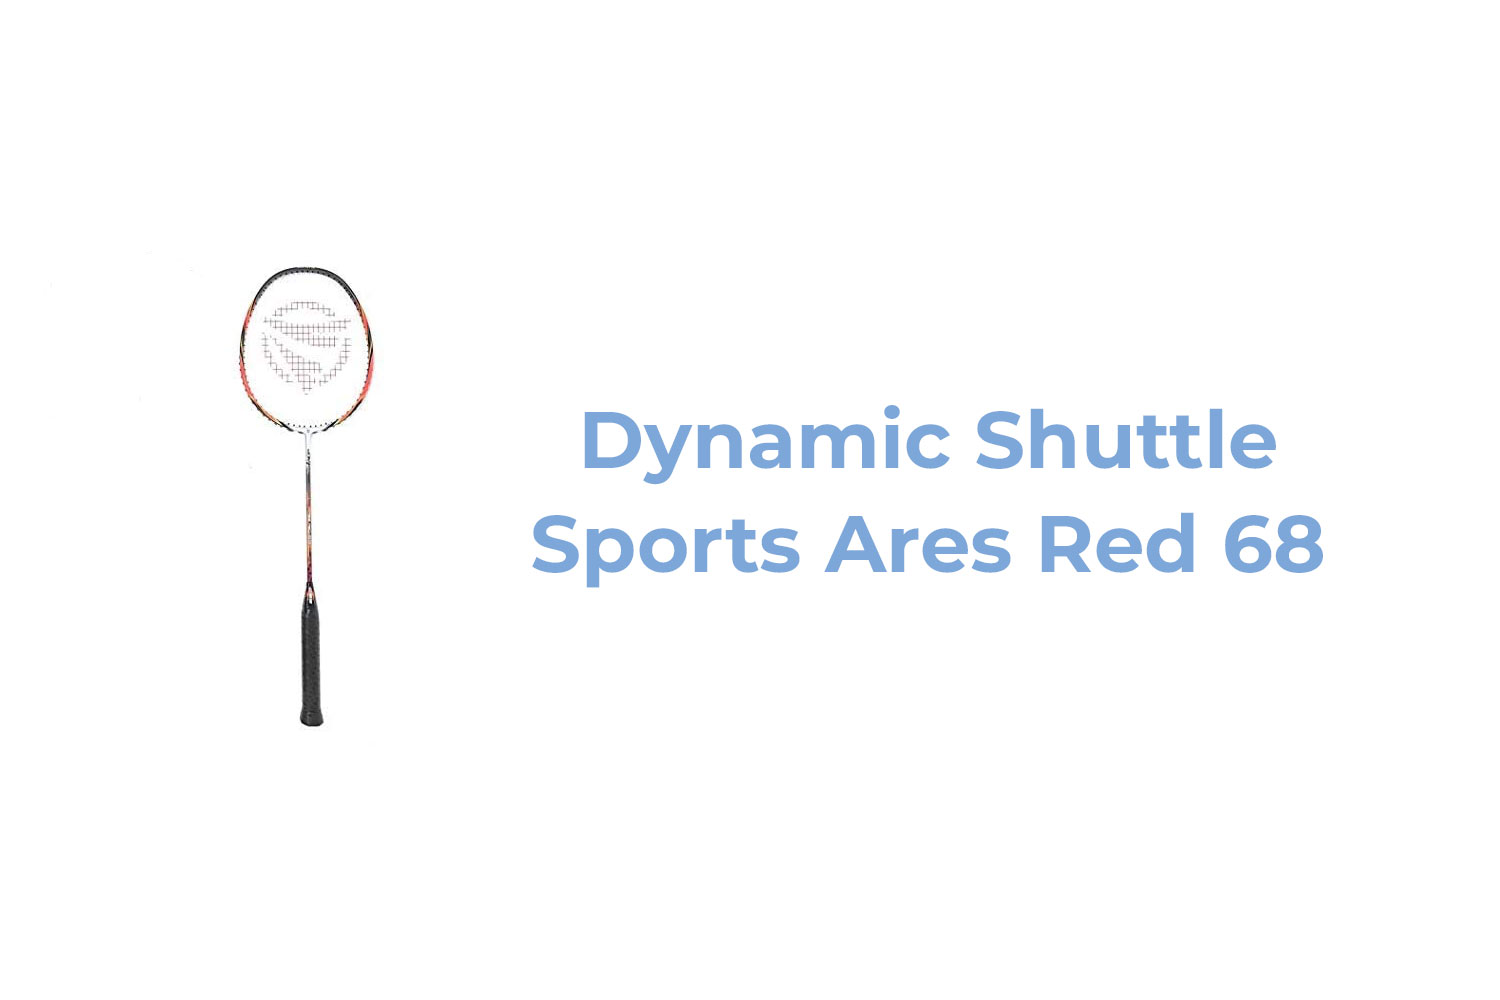 Dynamic Shuttle Sports Ares Red 68